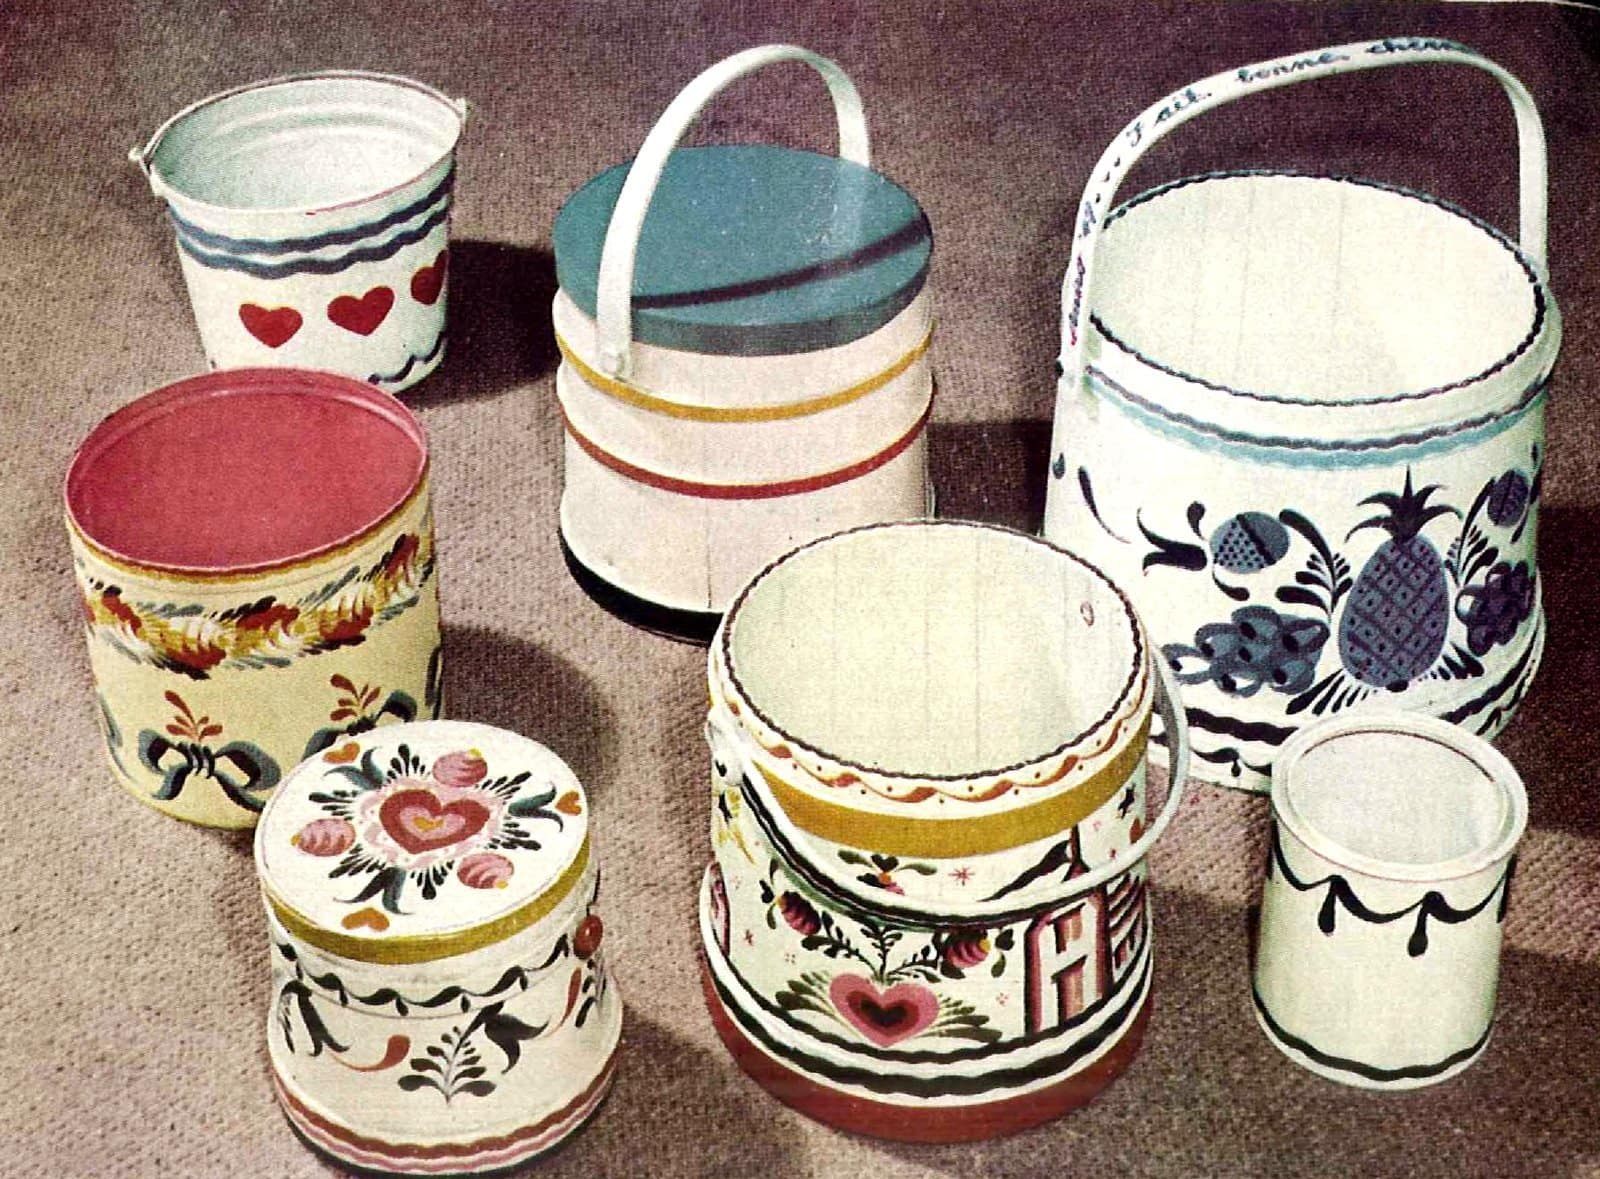 Old buckets made pretty with paintwork